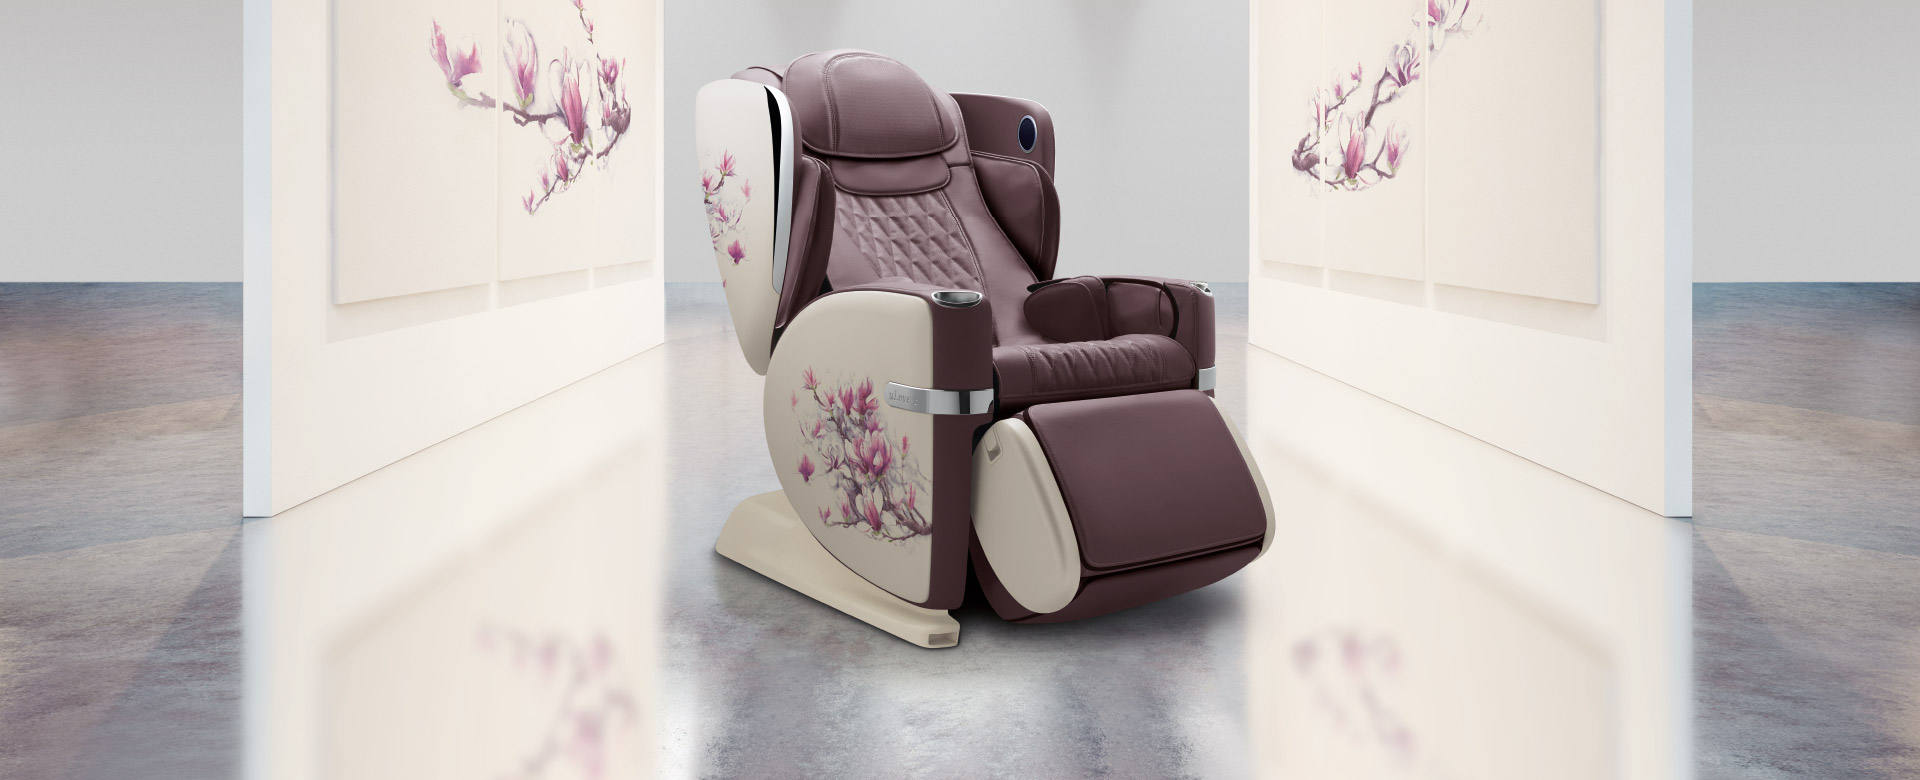 Ulove 2 Massage Chair 17 Slide 3